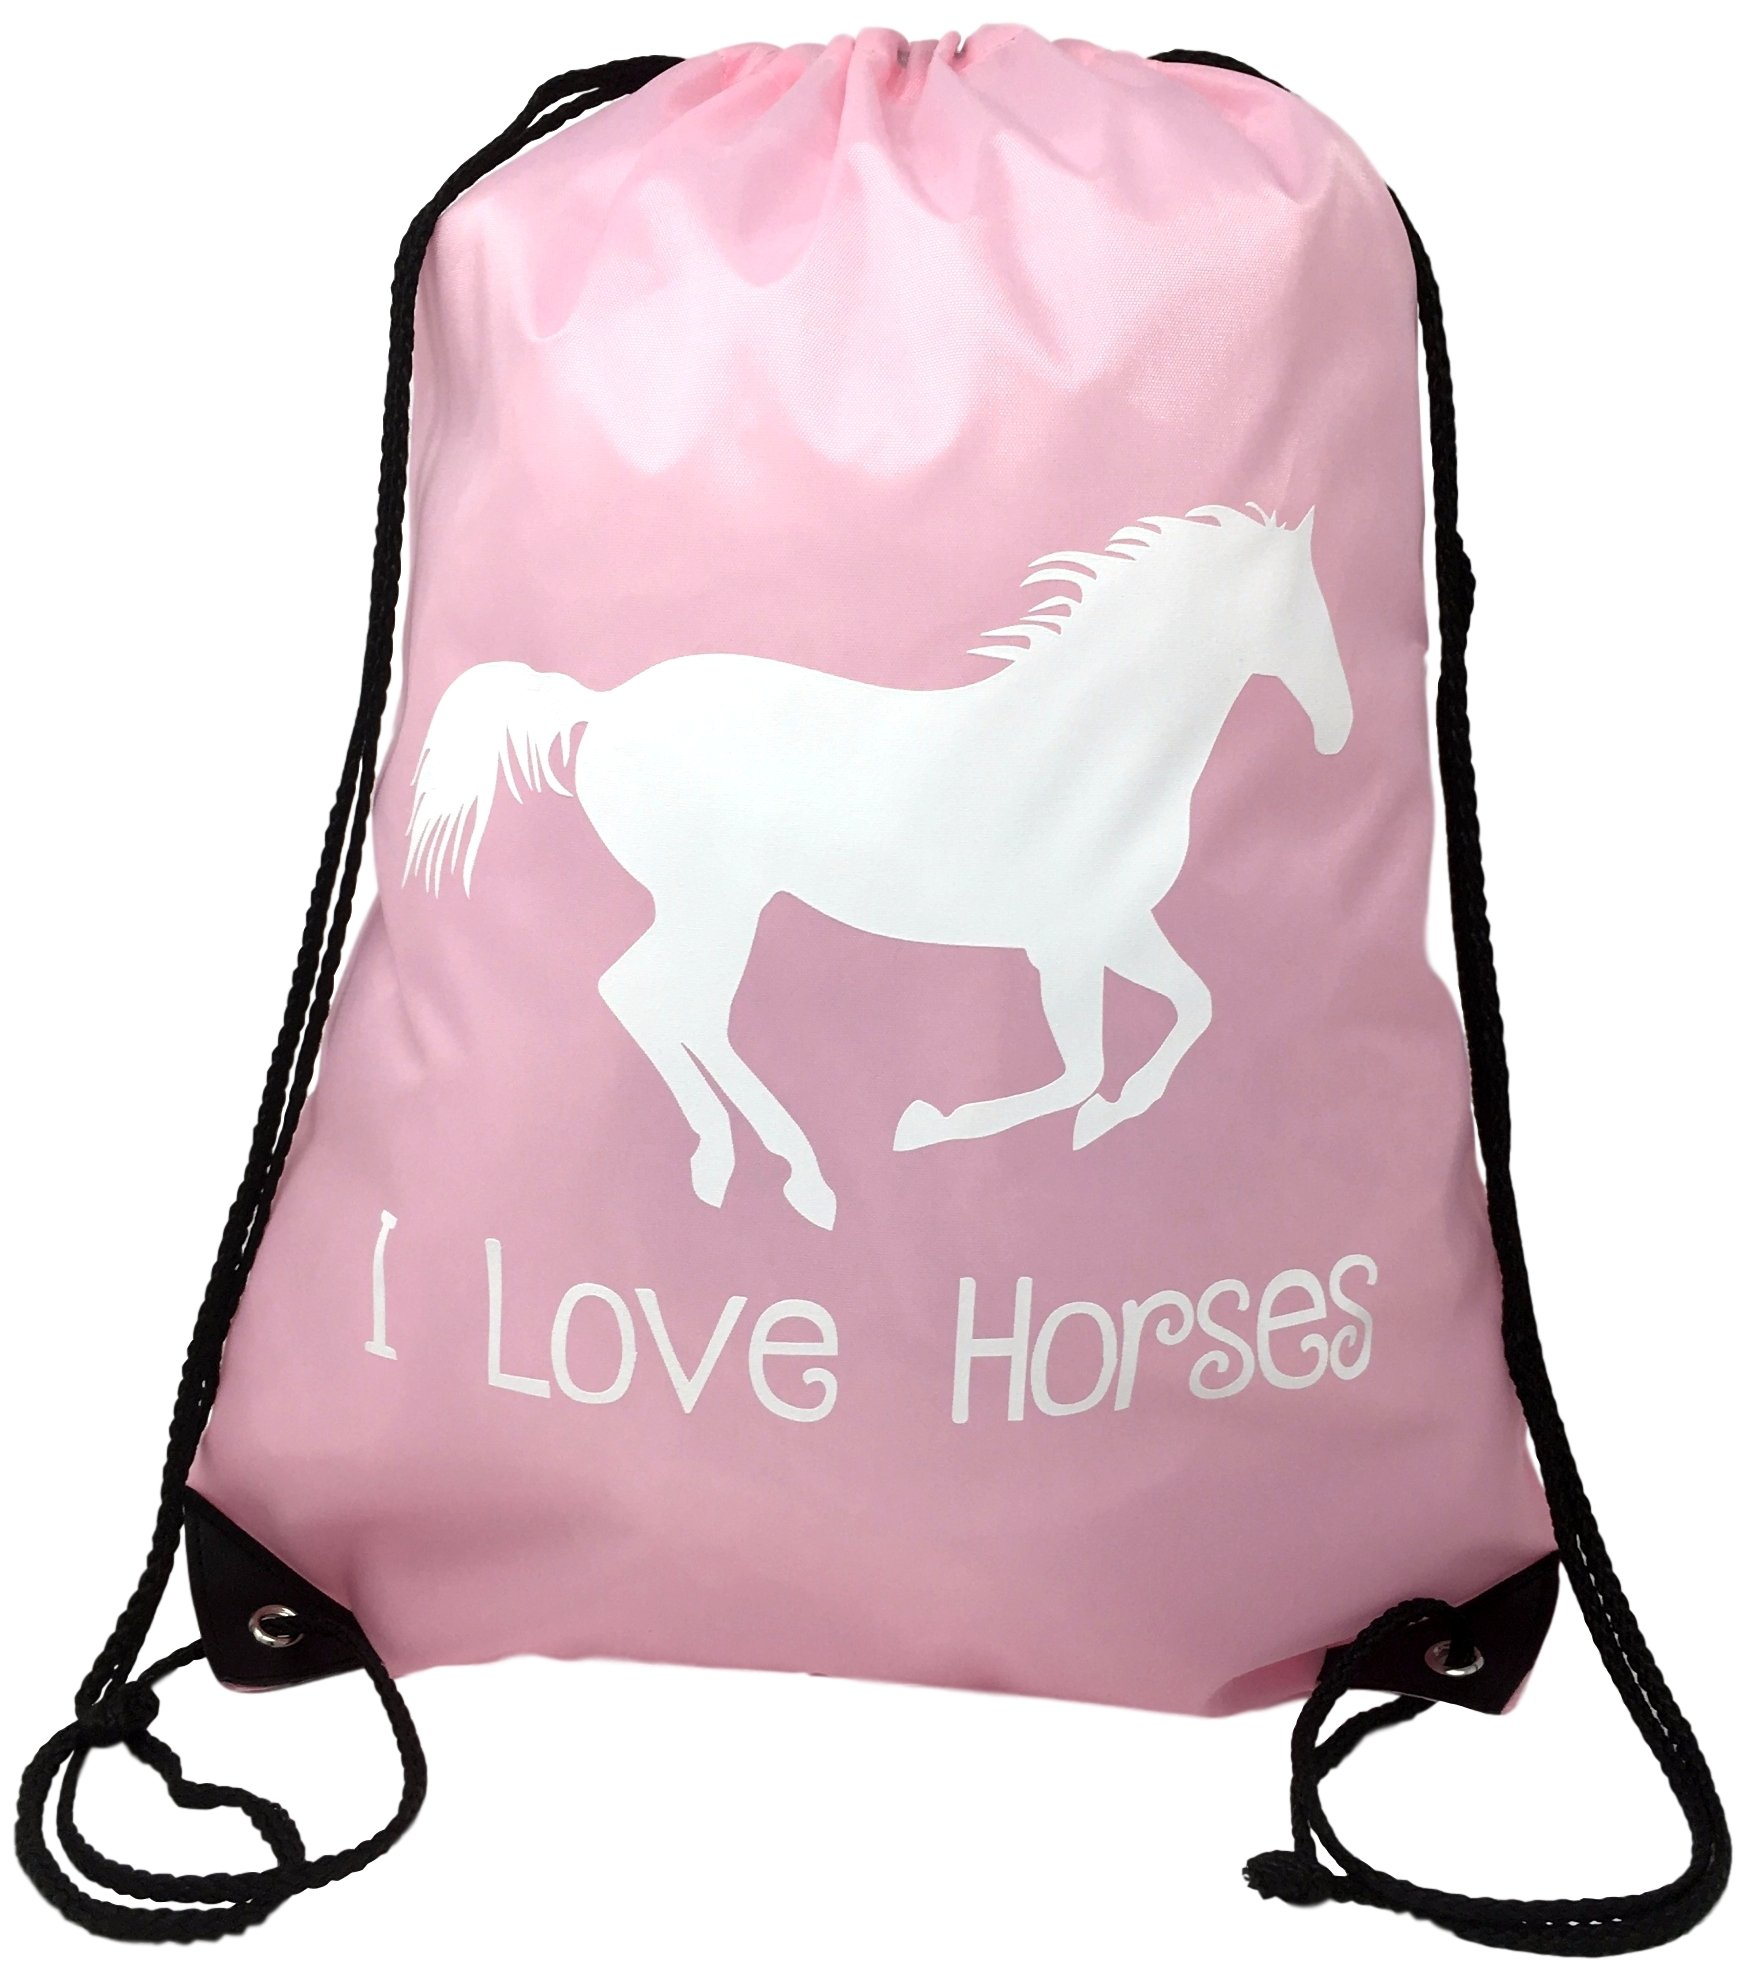 Horse Backpack--Pink, ''I Love Horses'' Drawstring Bag --Cute Horse Themed Gift for Girls